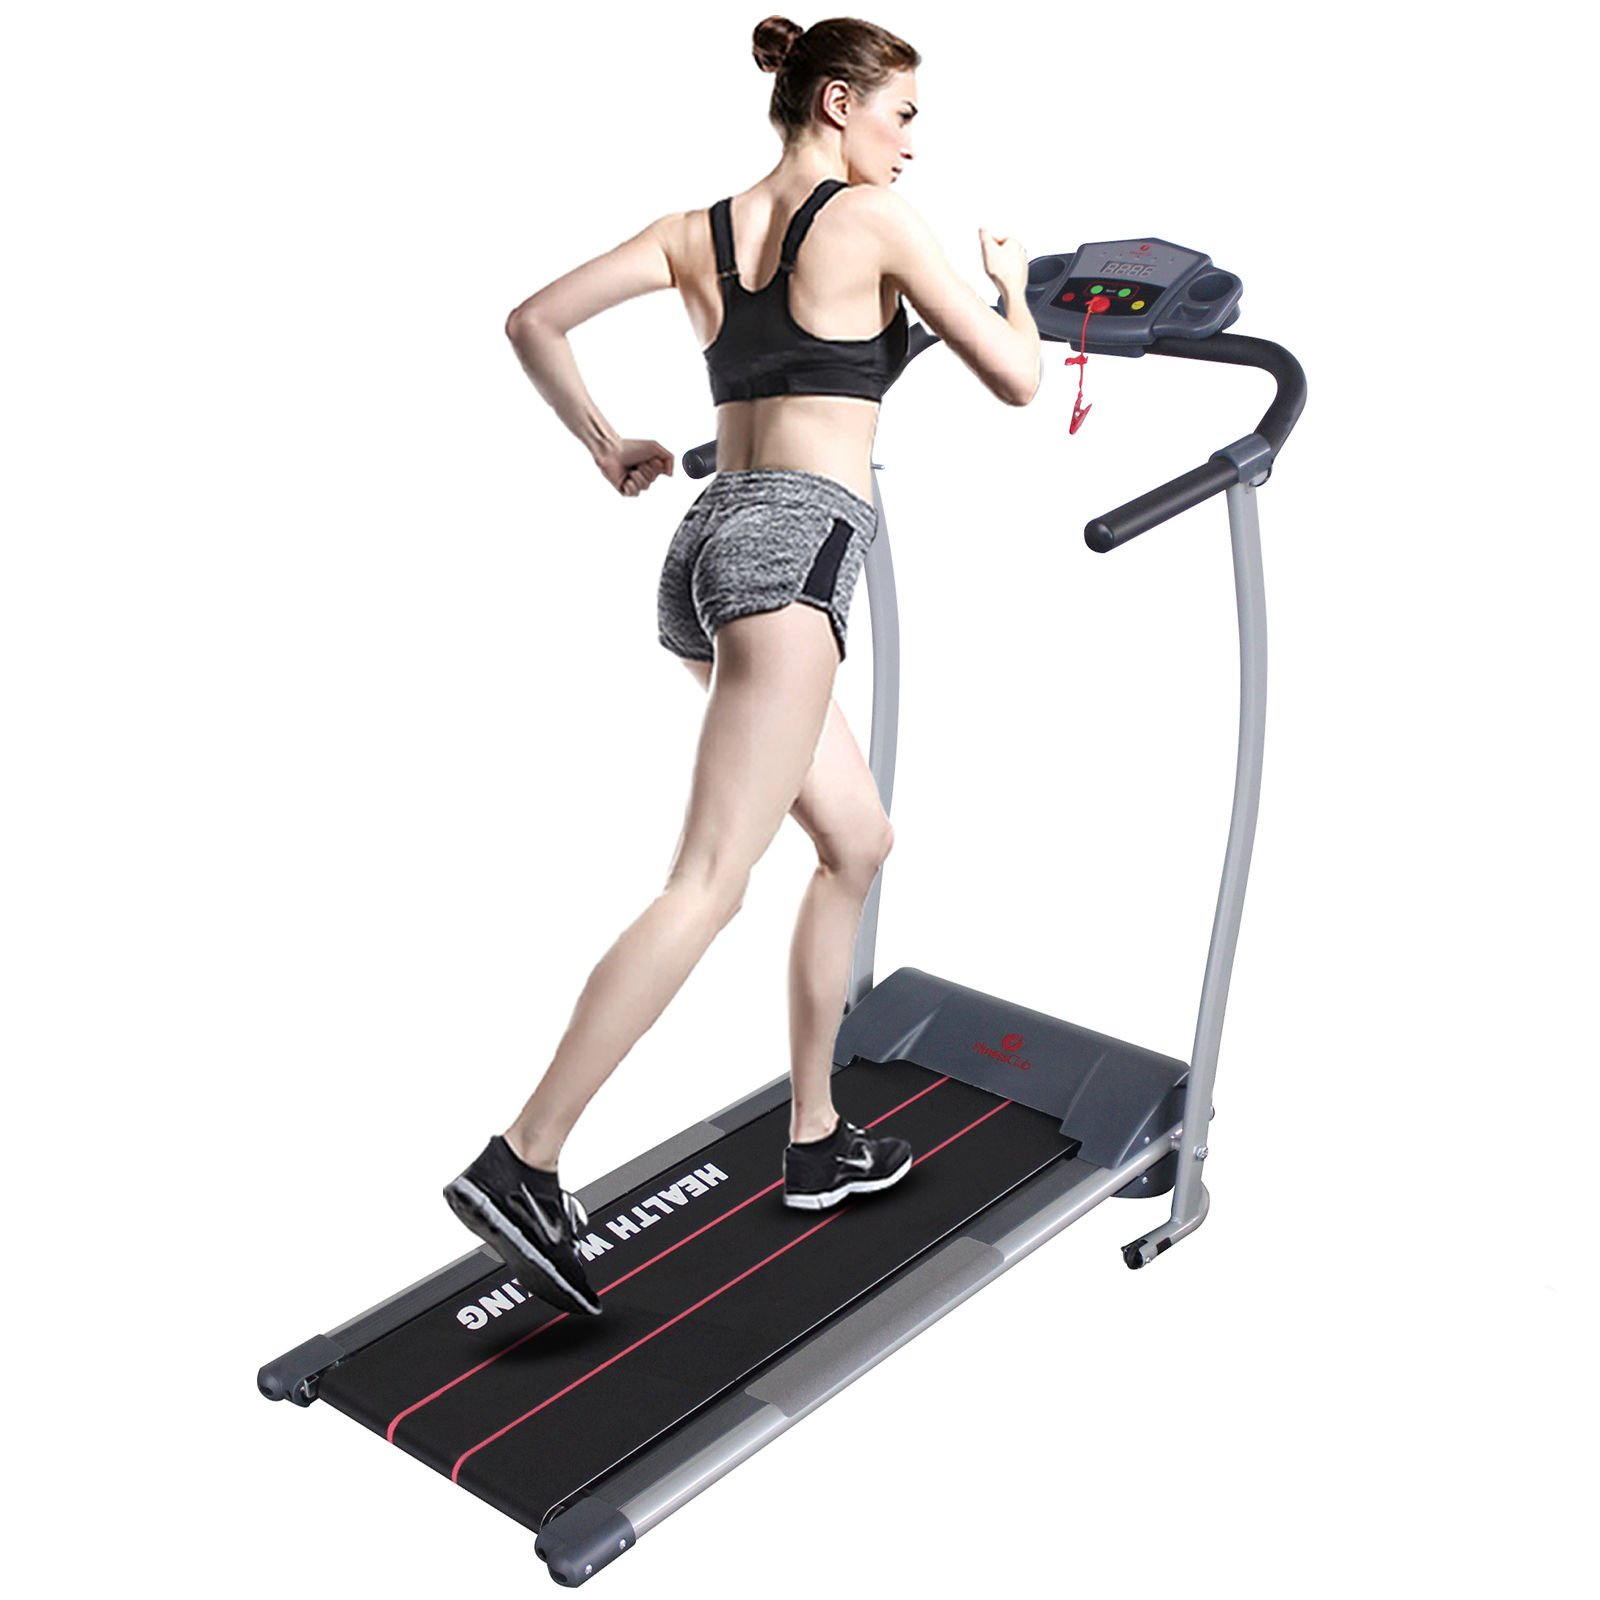 Fitnesclub 500W Electric Motorized Treadmill Machine Folding Running Gym Fitness Machine for Exercise-Grey Color w/free twist plate